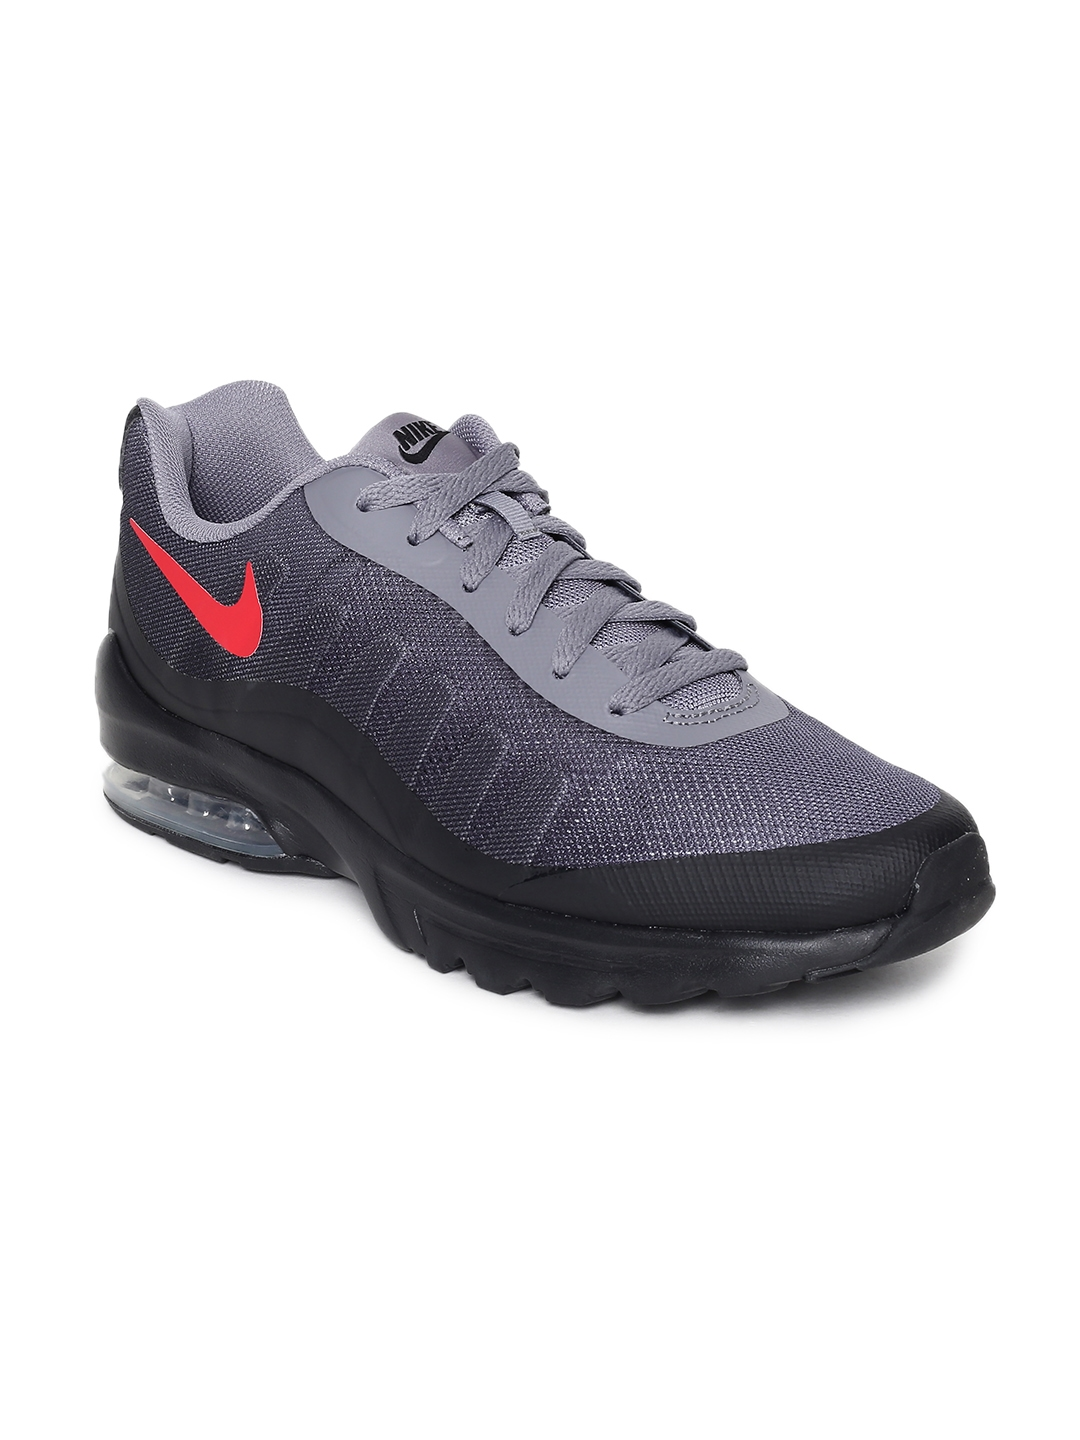 Buy Nike Men Grey AIR MAX INVIGOR PRINT Running Shoes - Sports Shoes ... 93f6eb6ac